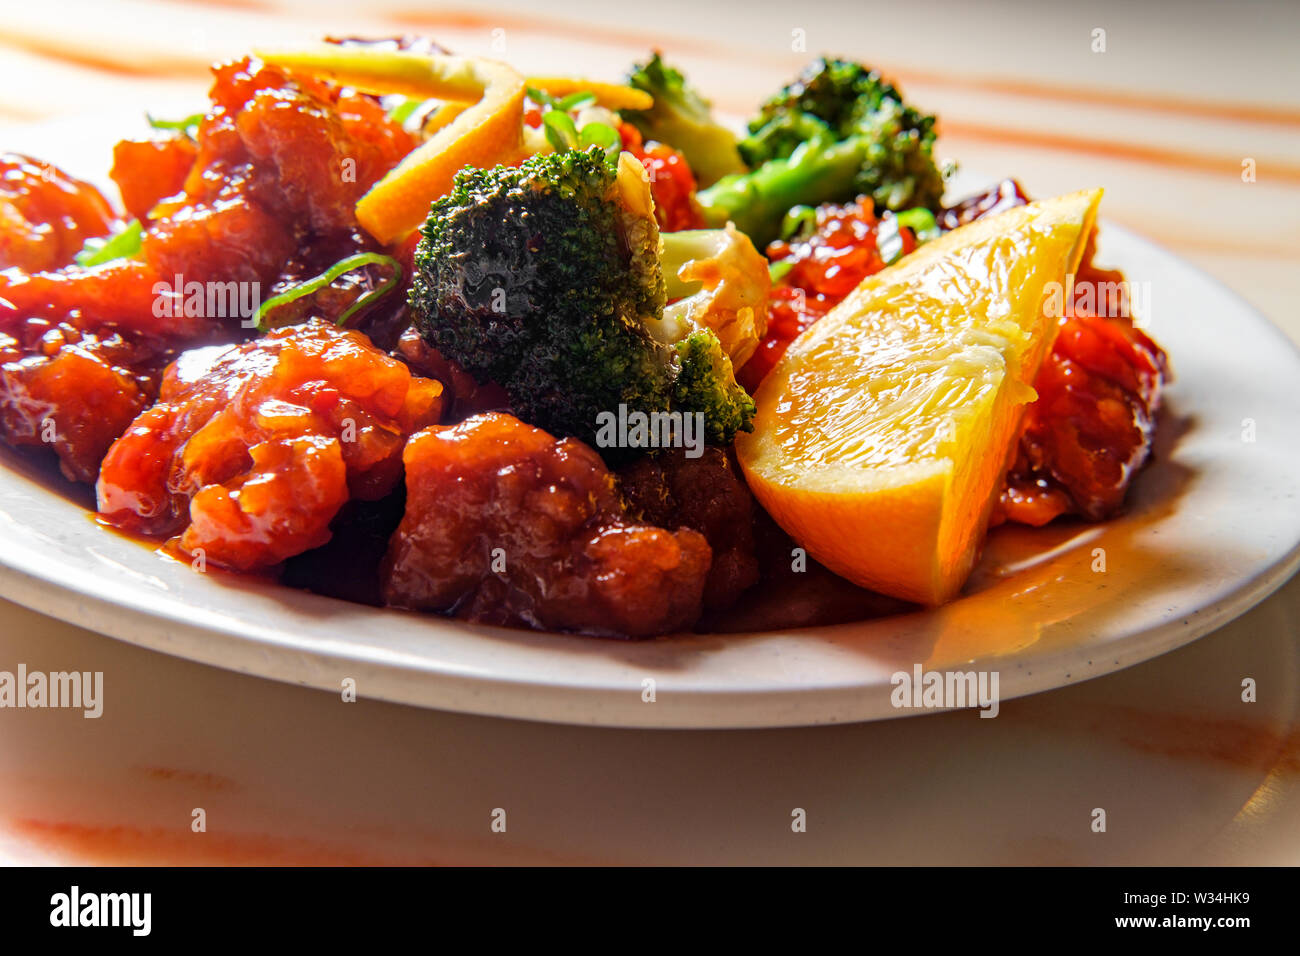 Hot and spicy chinese orange chicken with broccoli - Stock Image